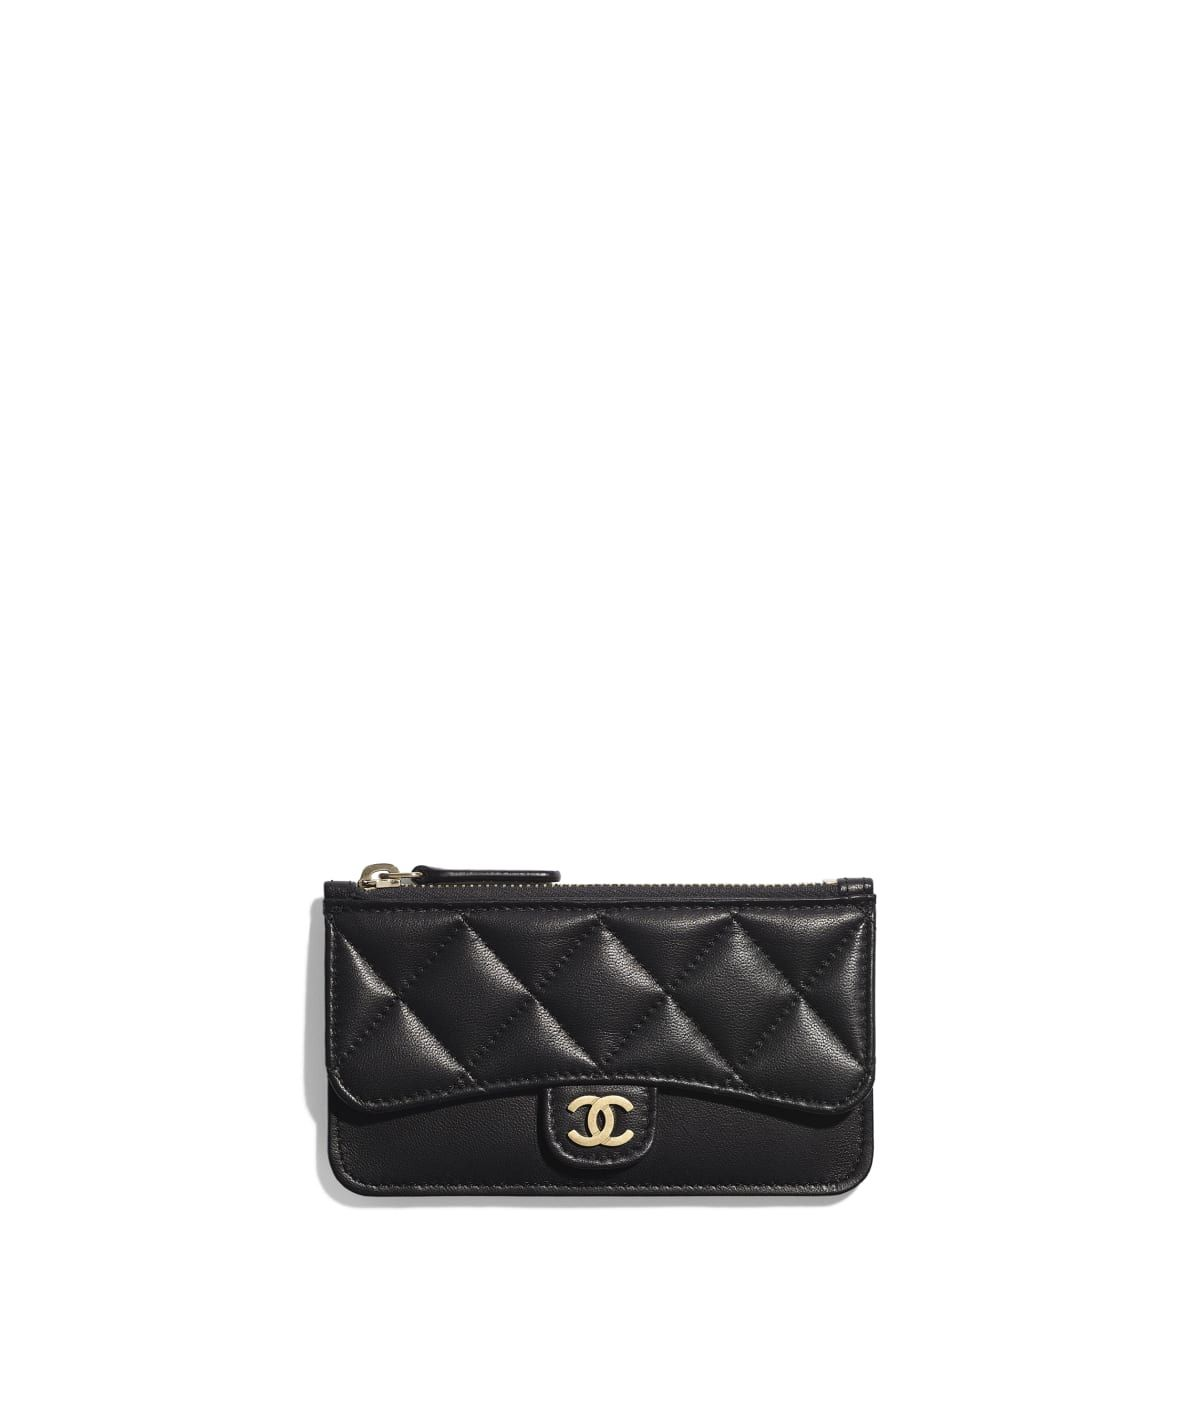 91eeb58305bc Small Leather Goods of the Spring-Summer 2019 CHANEL Fashion collection    Classic Card Holder